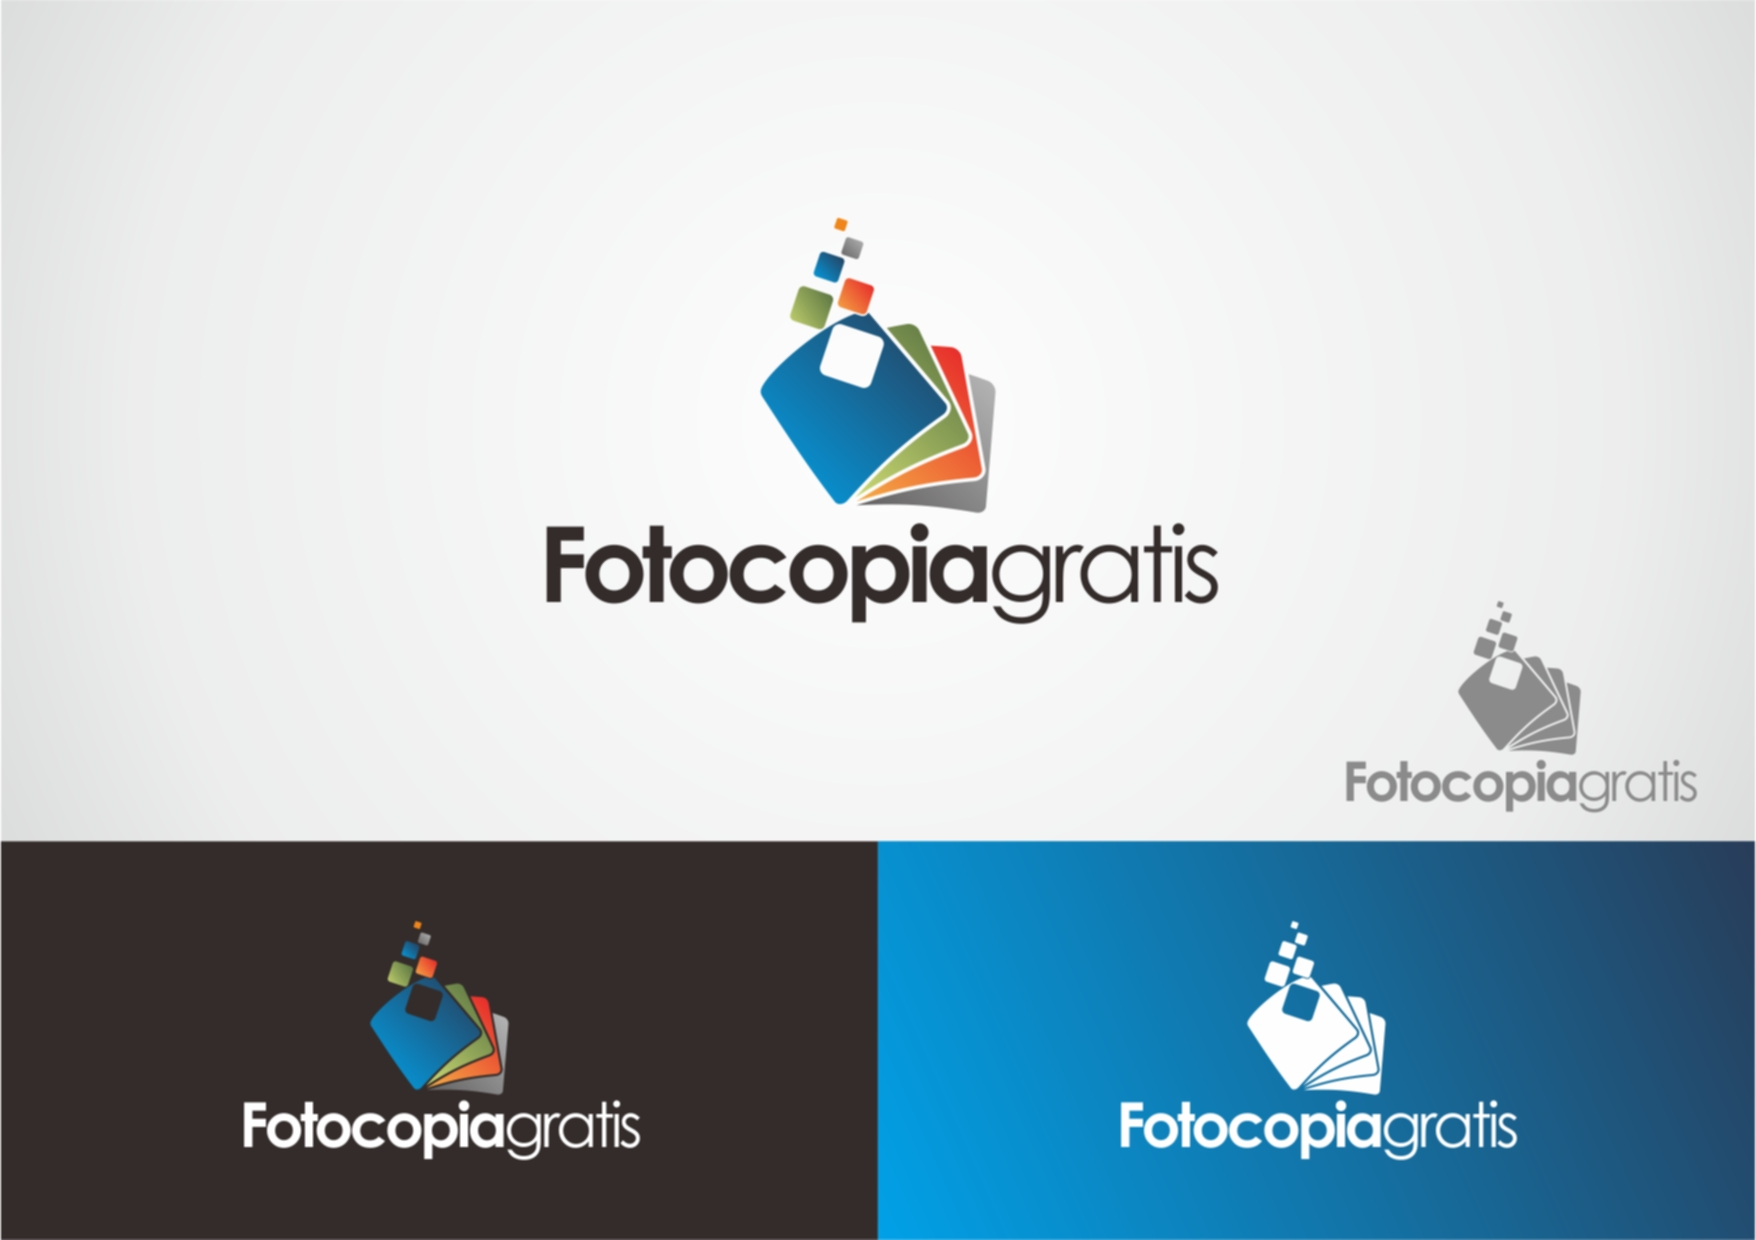 Logo Design by Private User - Entry No. 26 in the Logo Design Contest Inspiring Logo Design for Fotocopiagratis.